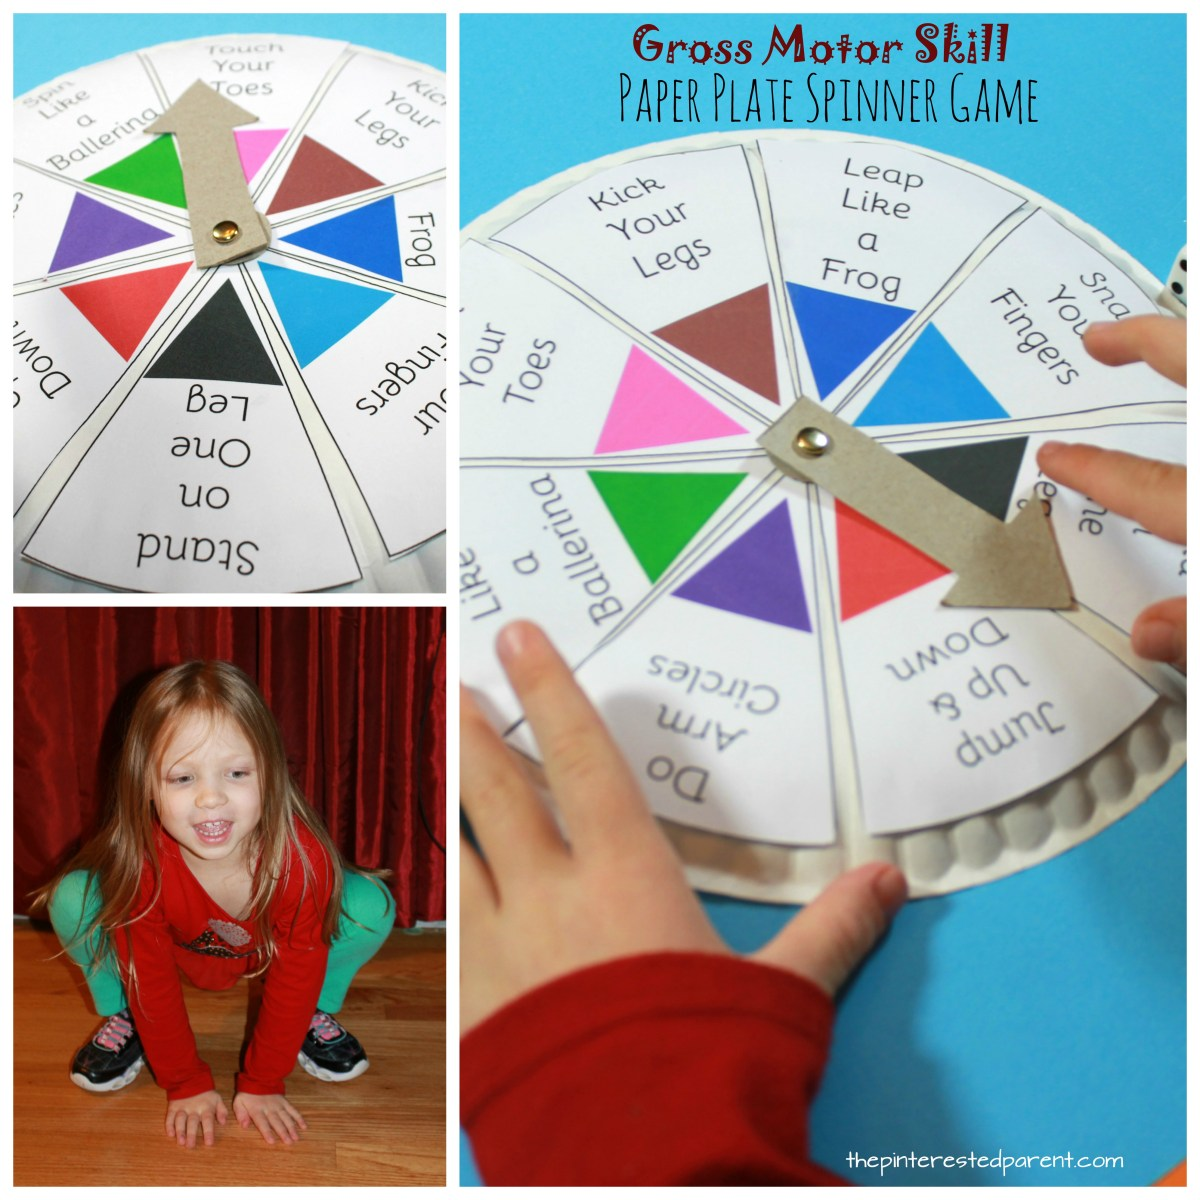 Spin, Roll & Count Gross Motor Skill Game